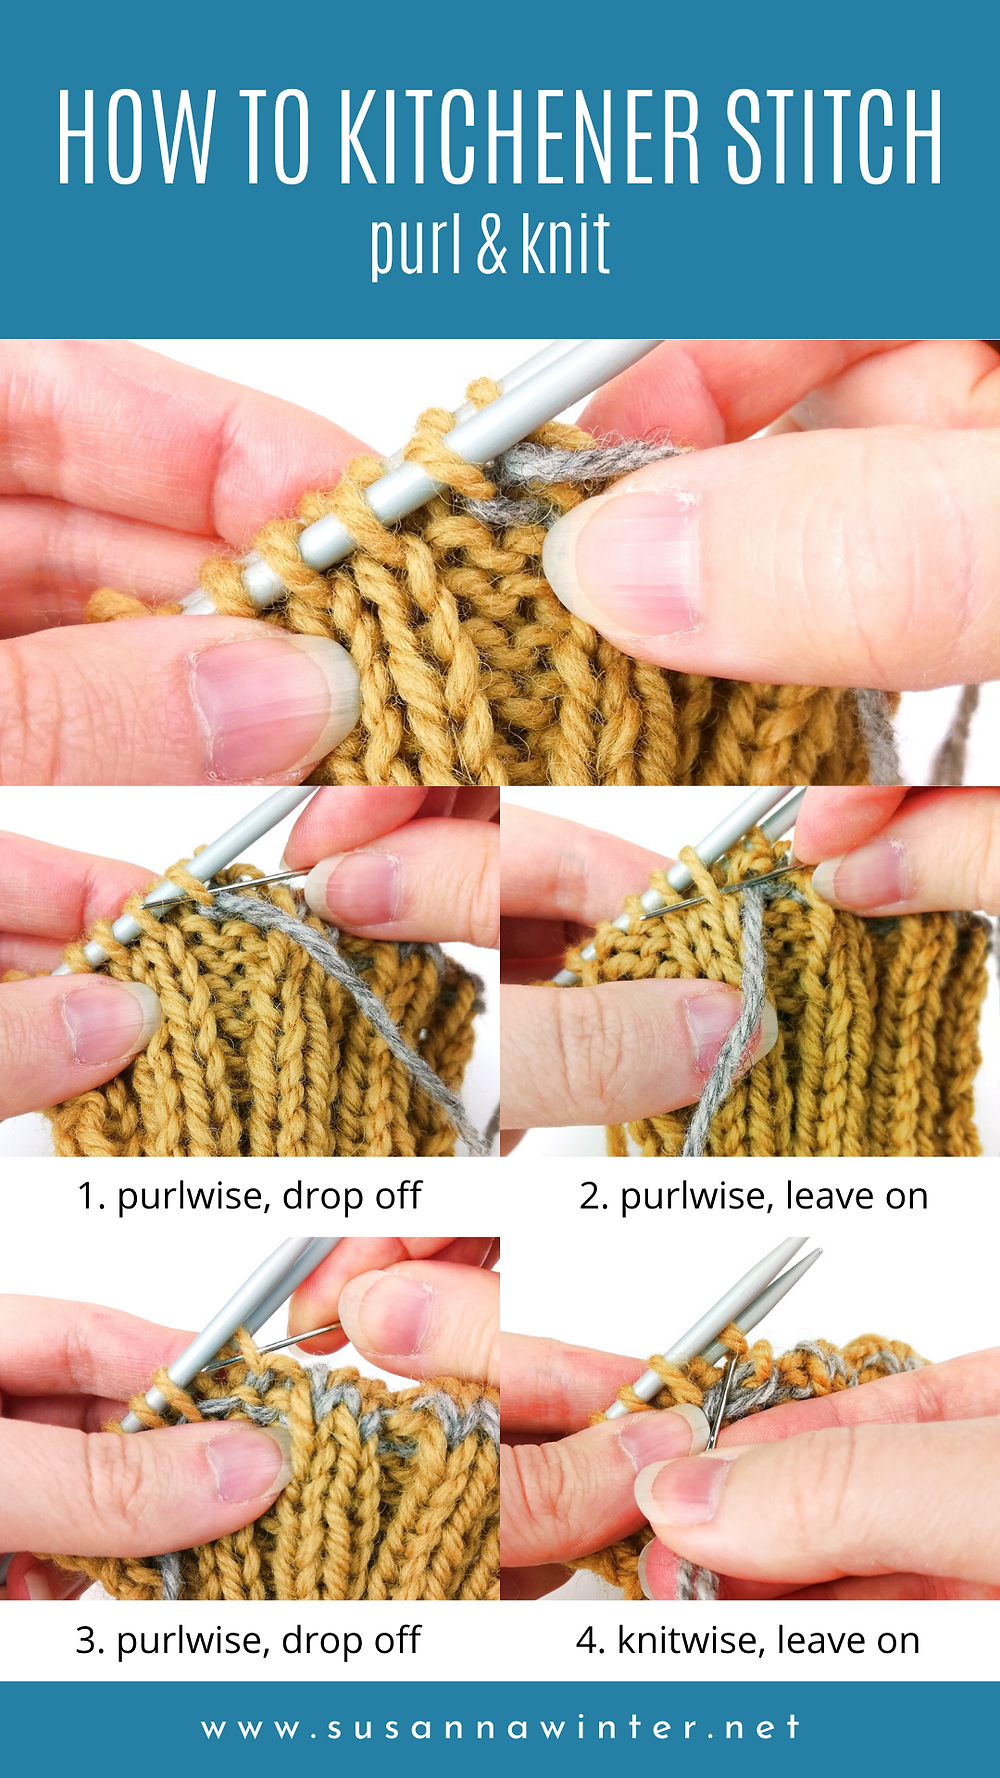 How to Kitchener stitch in pattern: purl and knit